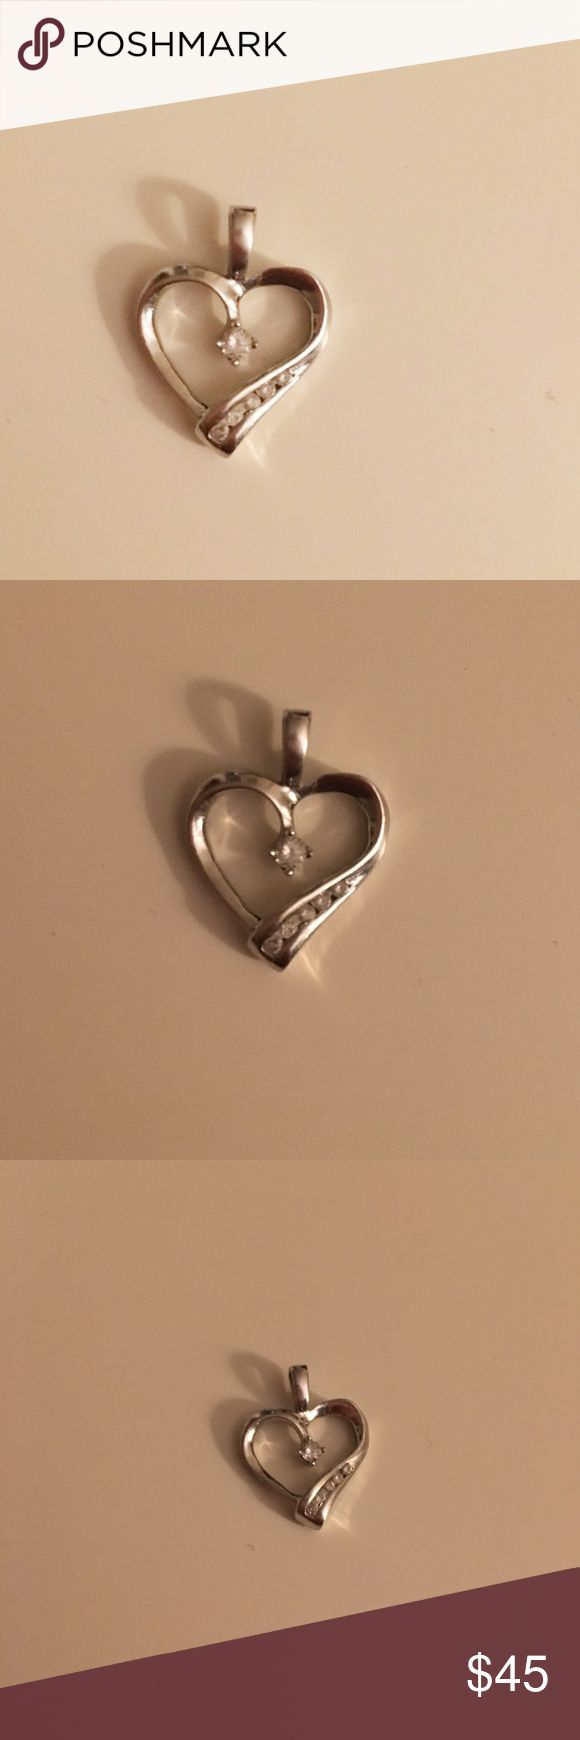 10k White Gold Diamond Heart Necklace Pendant Beautiful 10k White Gold Diamond Heart Pendant. Necklace chain not included. Jewelry Necklaces